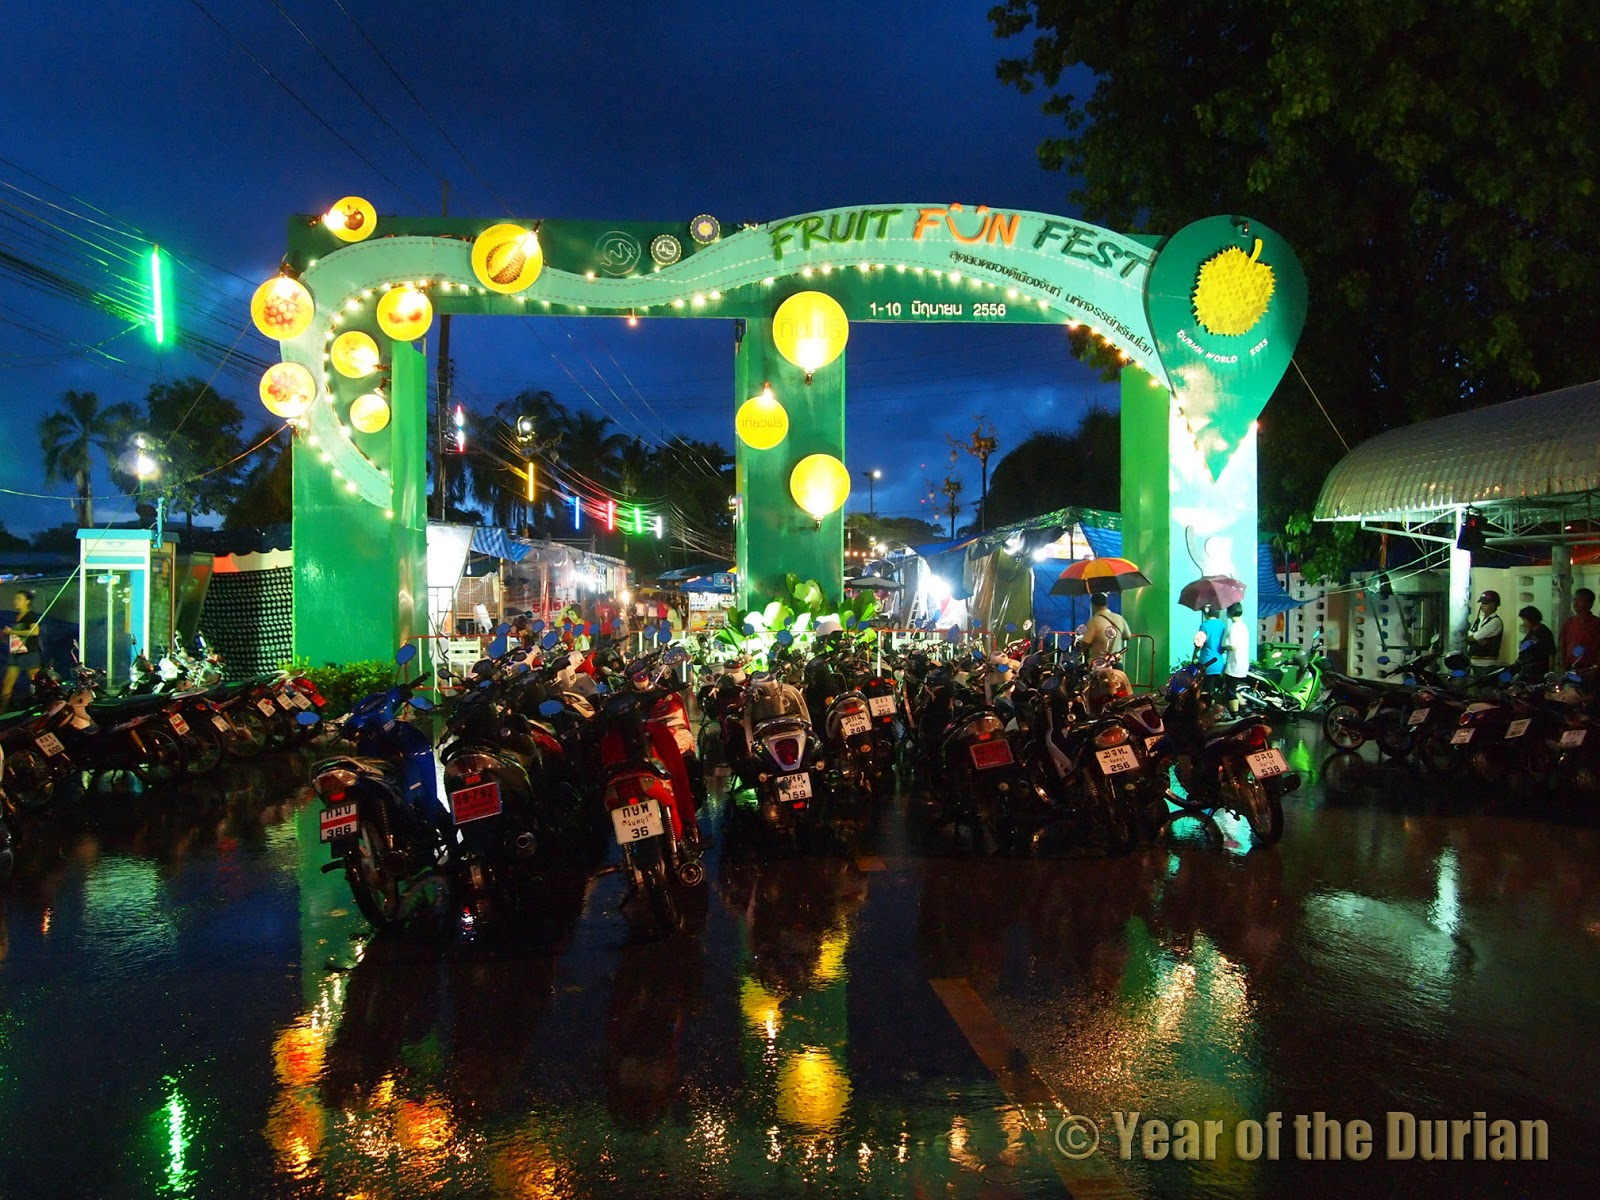 chanthaburi durian festival in the rain photo essay chanthaburi durian festival in the rain photo essay